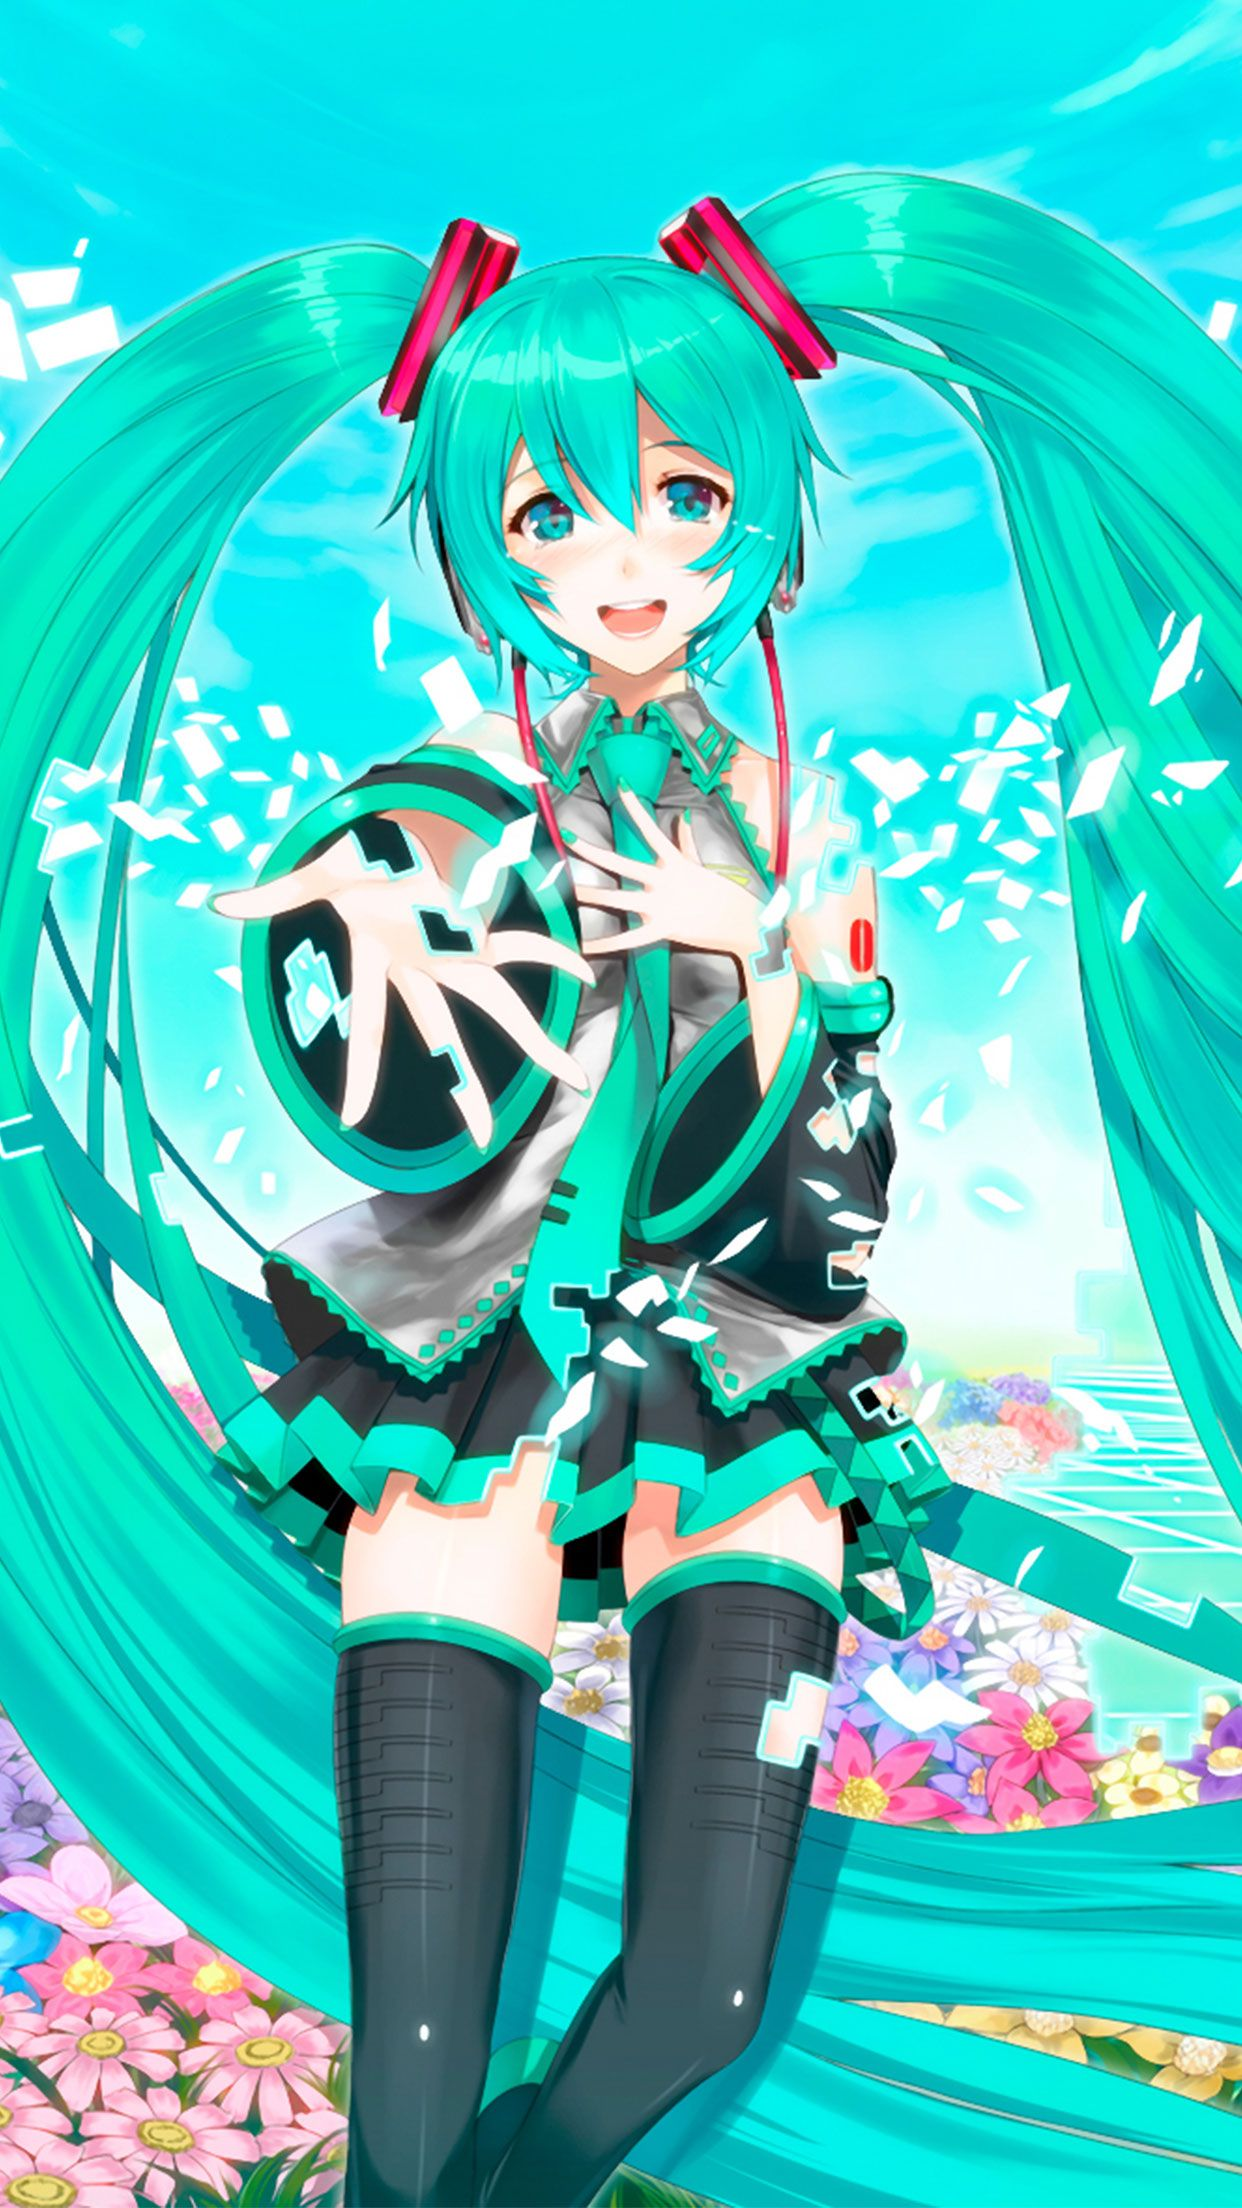 Hatsune Miku Anime Wallpaper For Iphone And Android Check Out More On Wallzapp